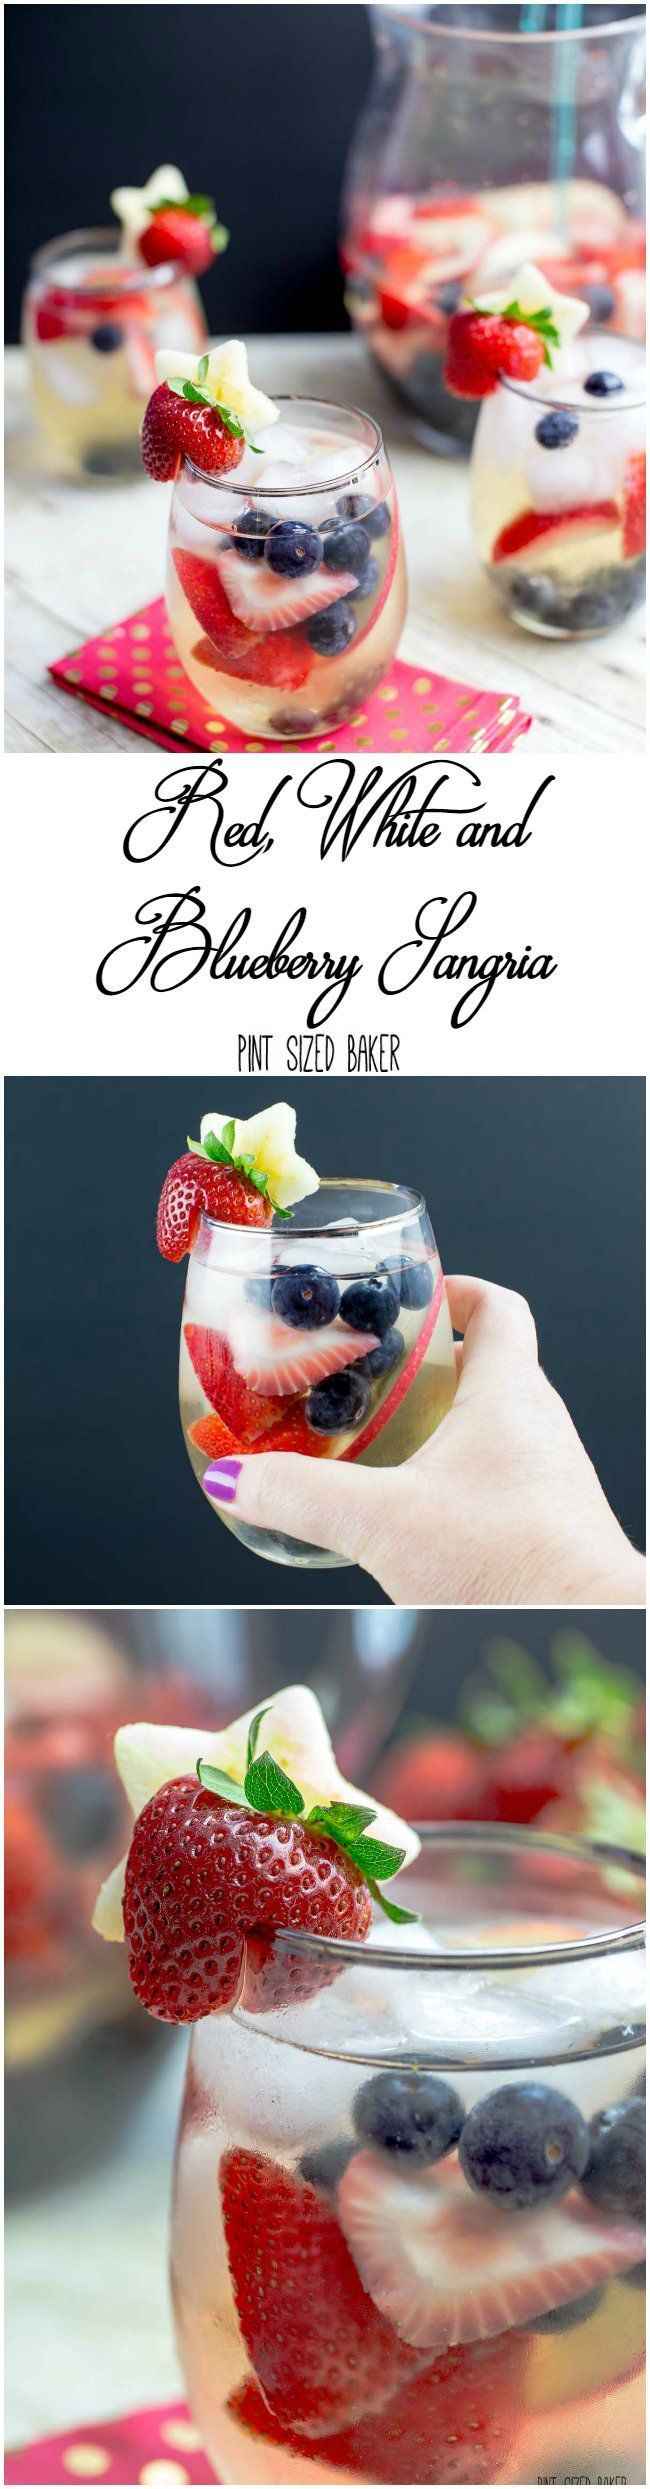 Summertime calls for a white wine Sangria. This Red, White and Blueberry Sangria Recipe serves a crowd. Fresh berries, white wine and some bubbly!